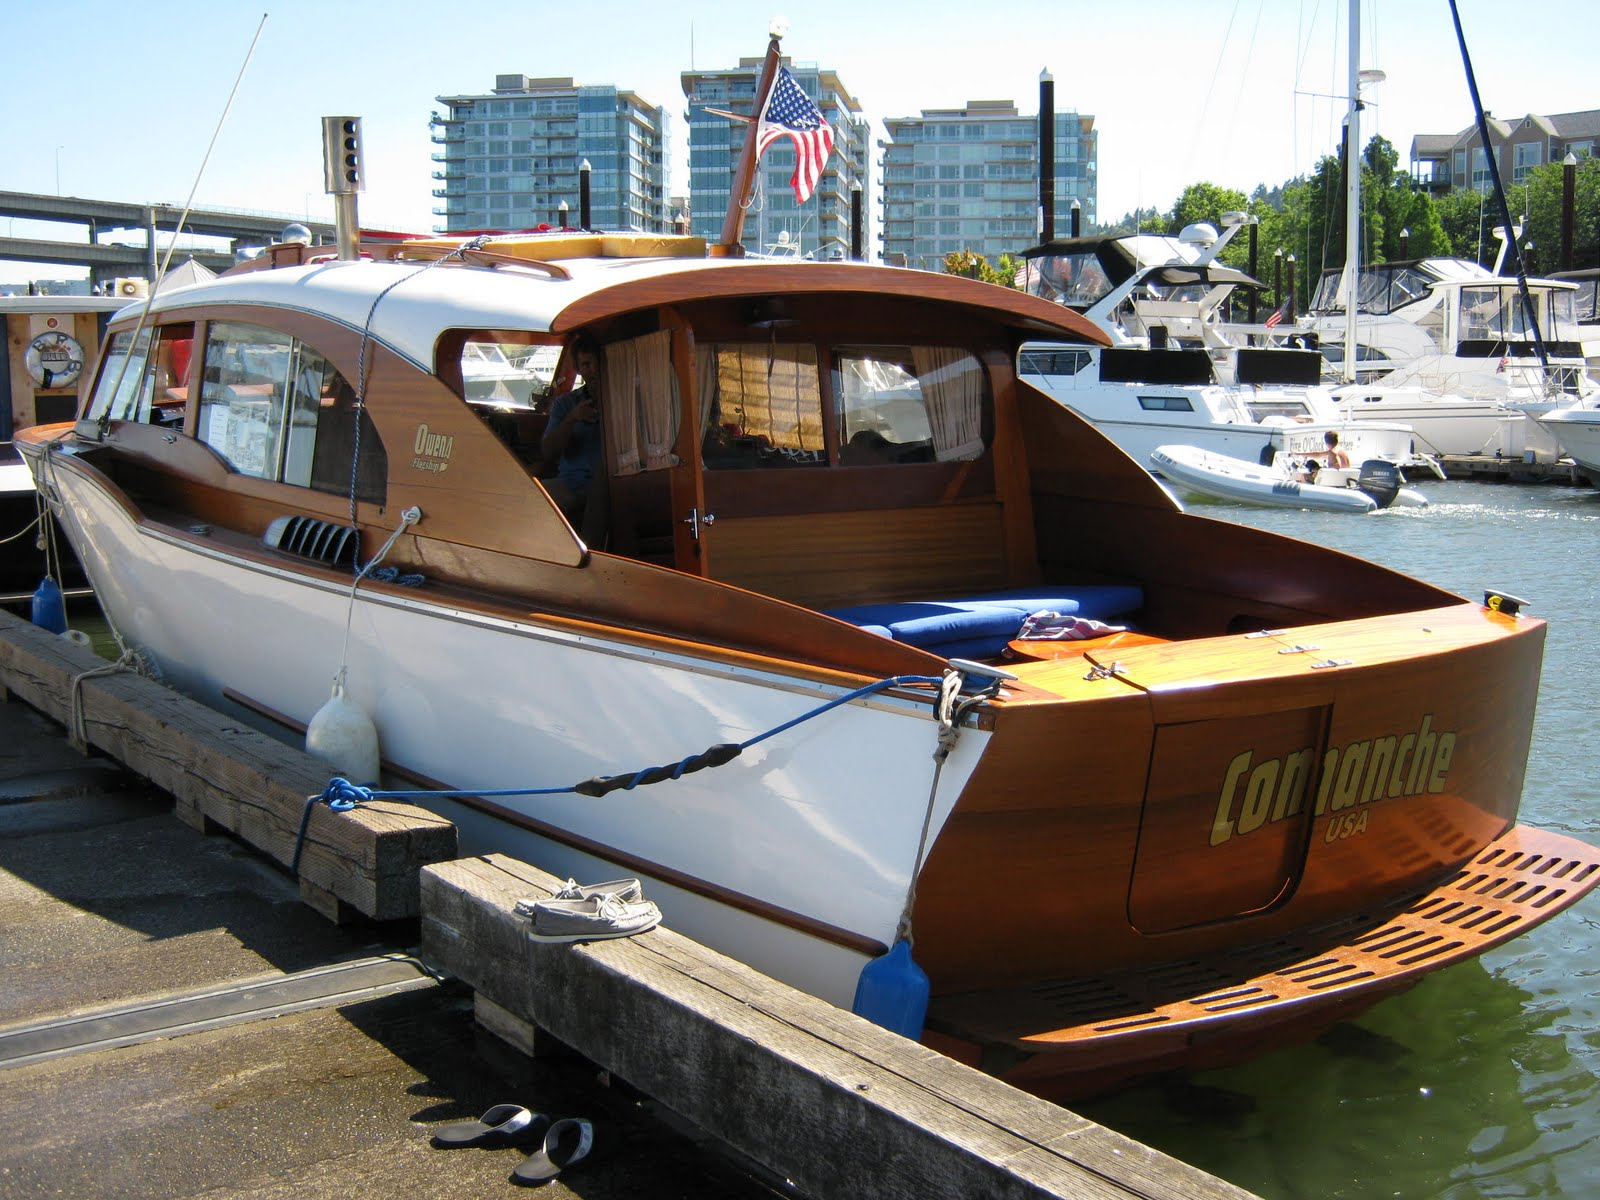 18th Annual Portland Boat Show A Summer Classic